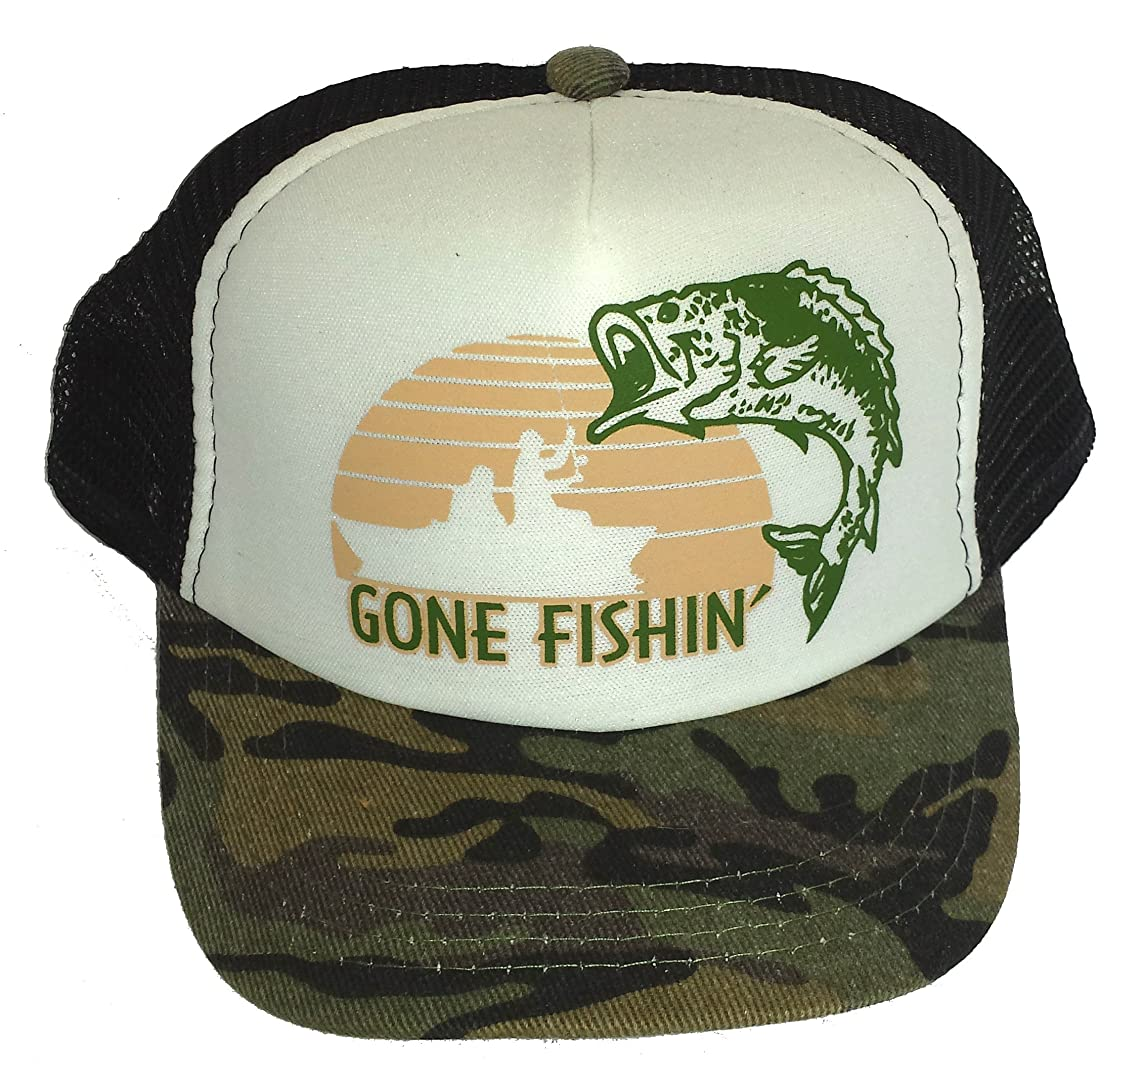 ThatsRad Toddler Kid's Gone Fishin Fishing Mesh Trucker Hat Cap Camouflage Camo